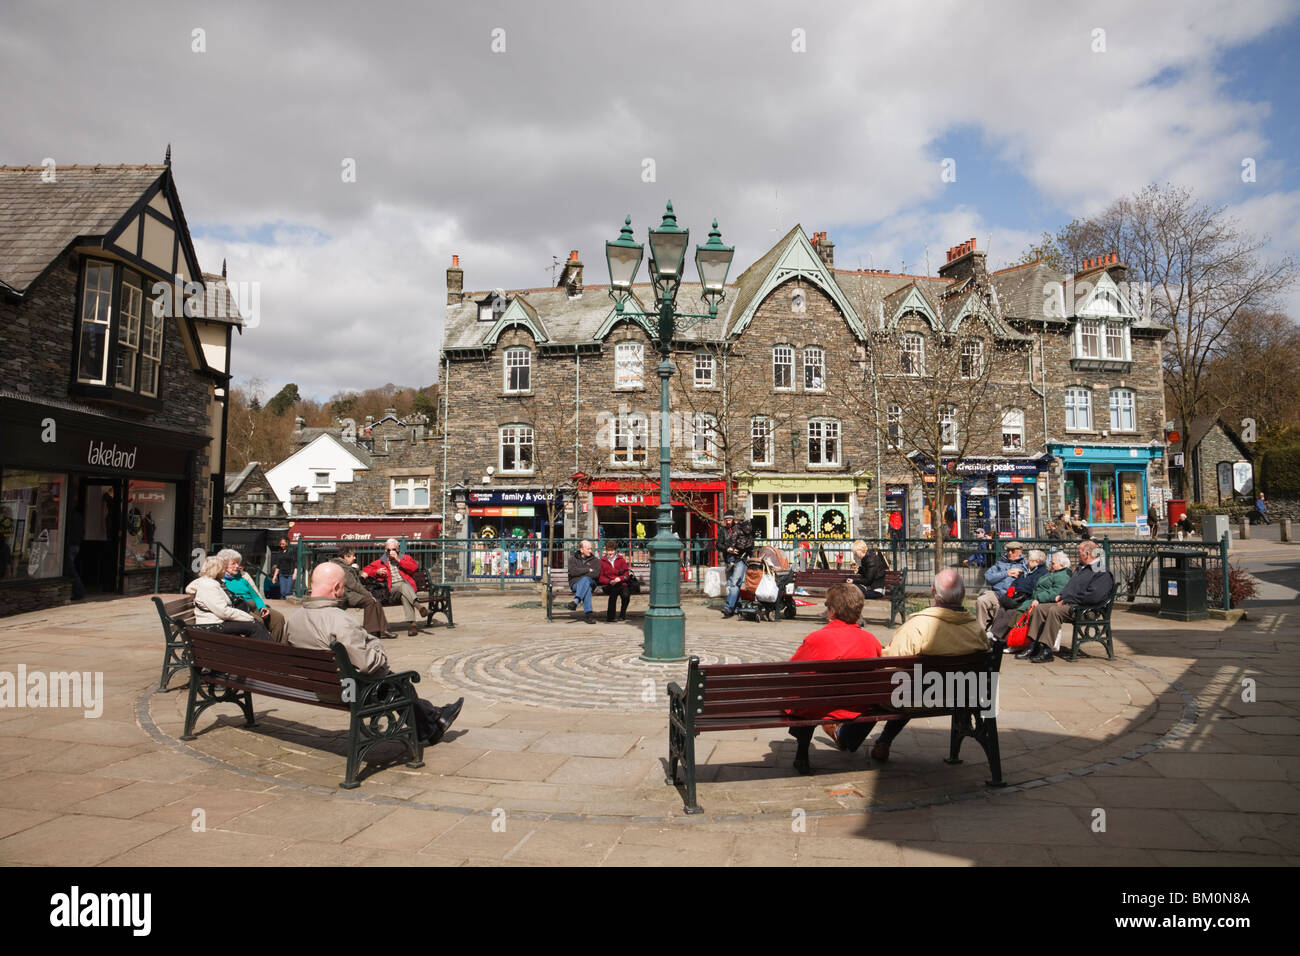 Market Cross, Ambleside, Cumbria, England, UK, Britain. People sitting in the town square - Stock Image